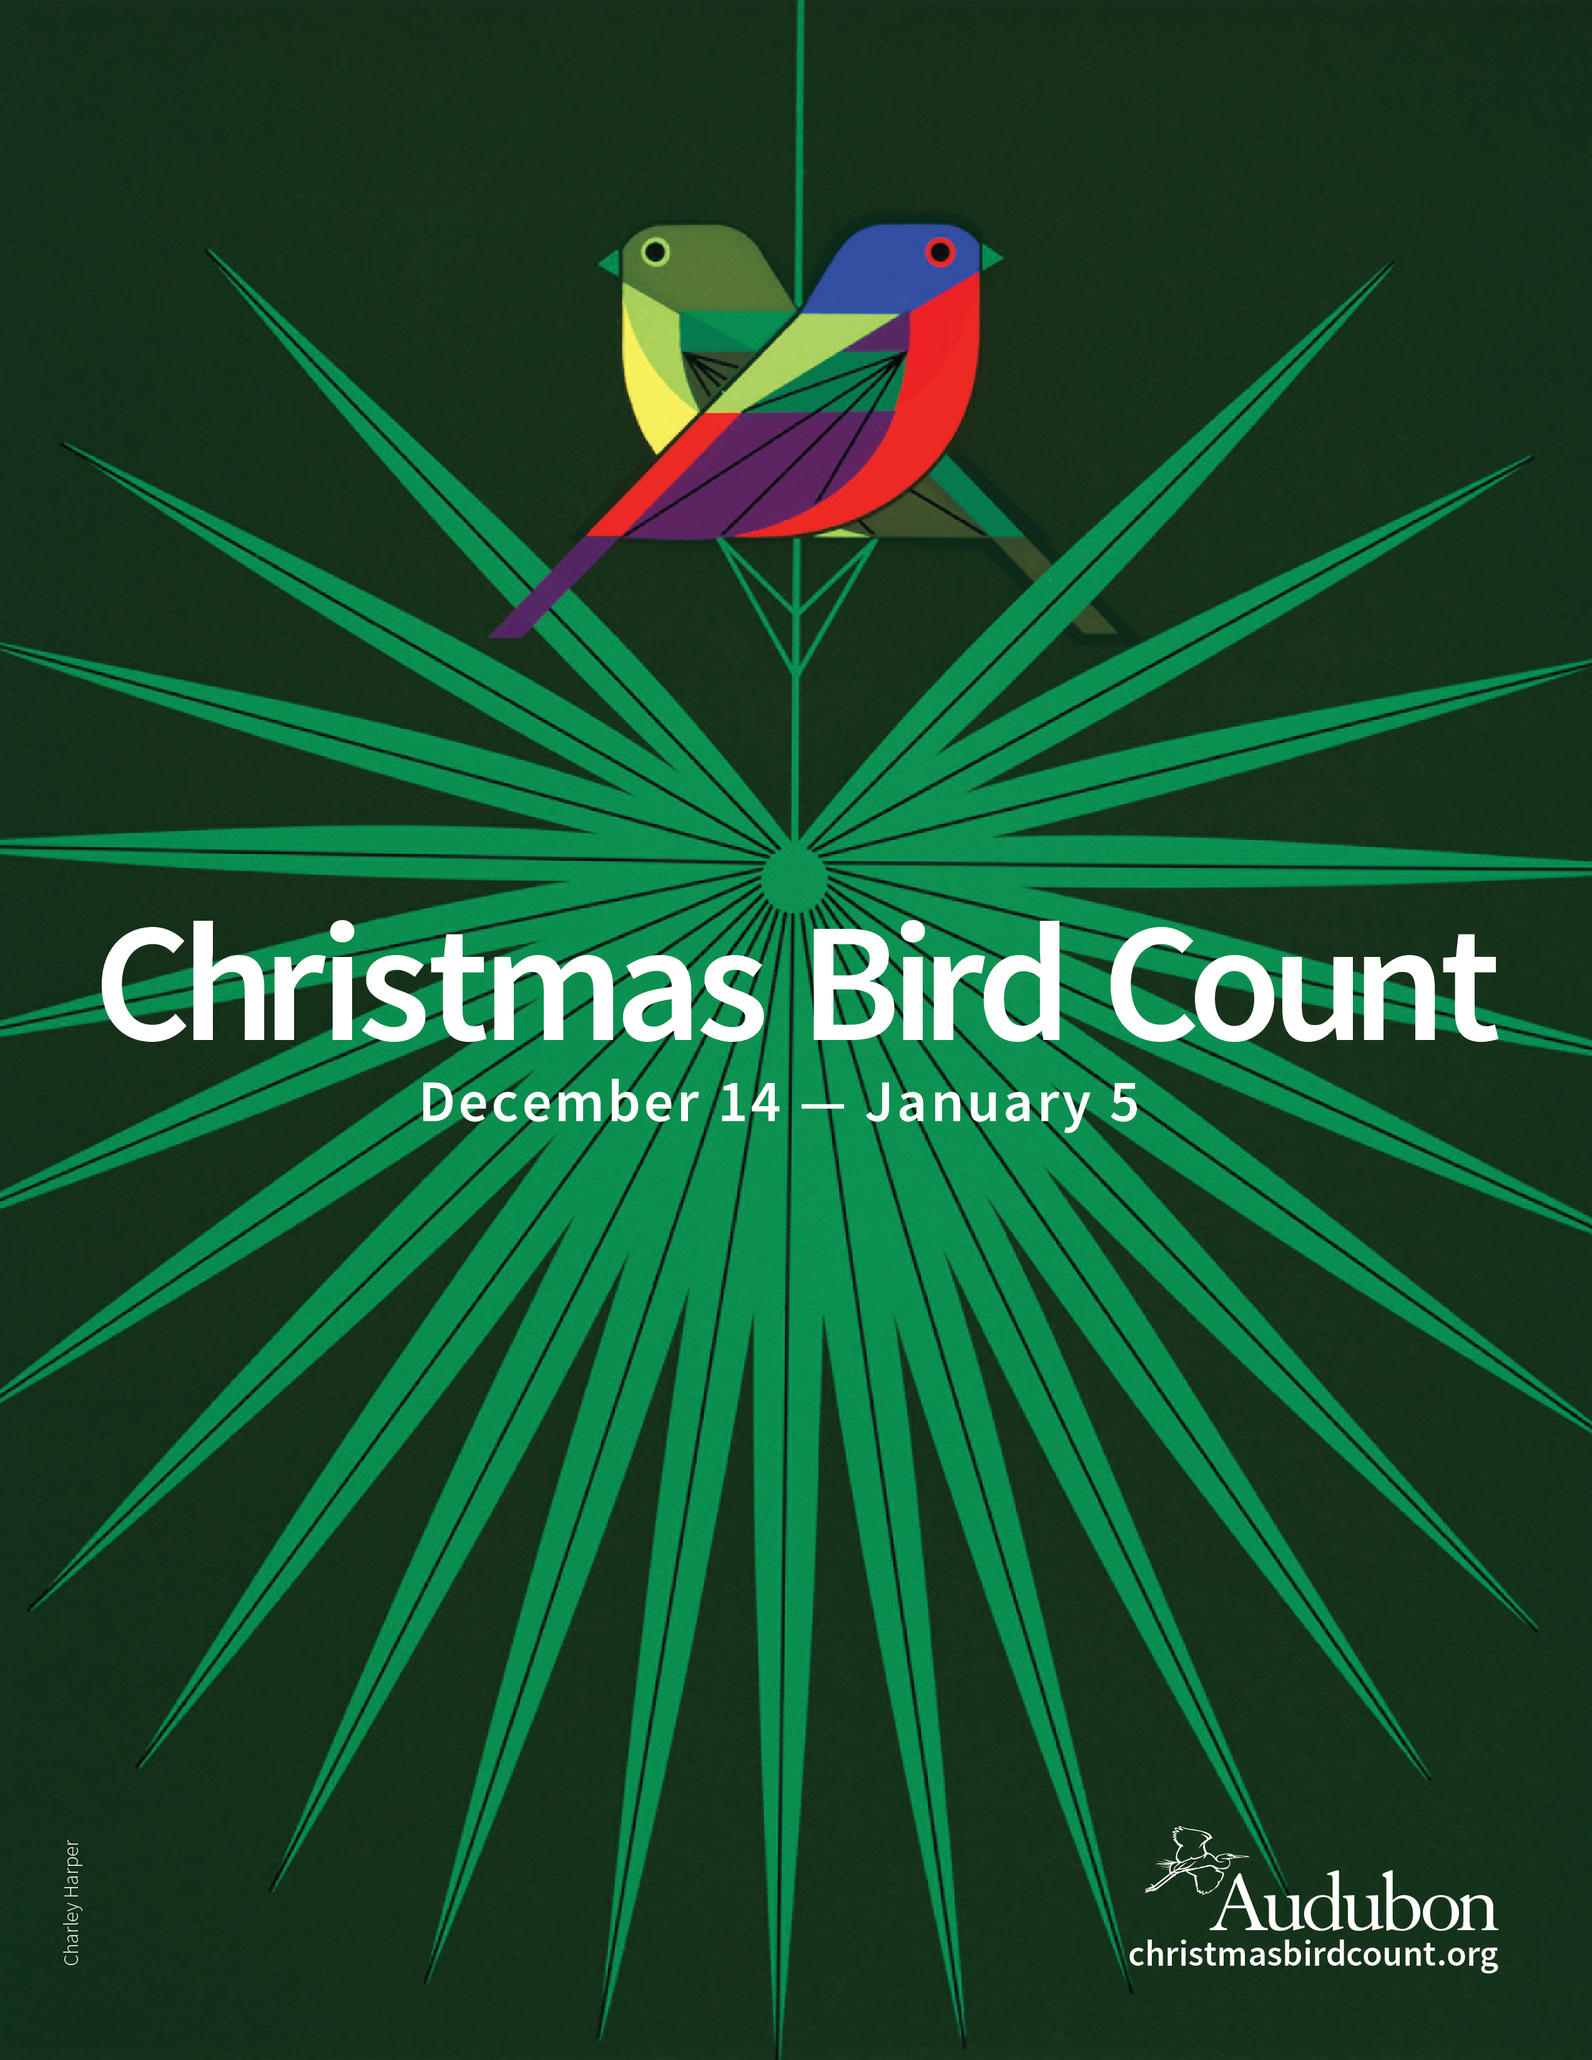 2020 Christmas Bird Count Audubon Christmas Bird Count at Corkscrew | Audubon Corkscrew